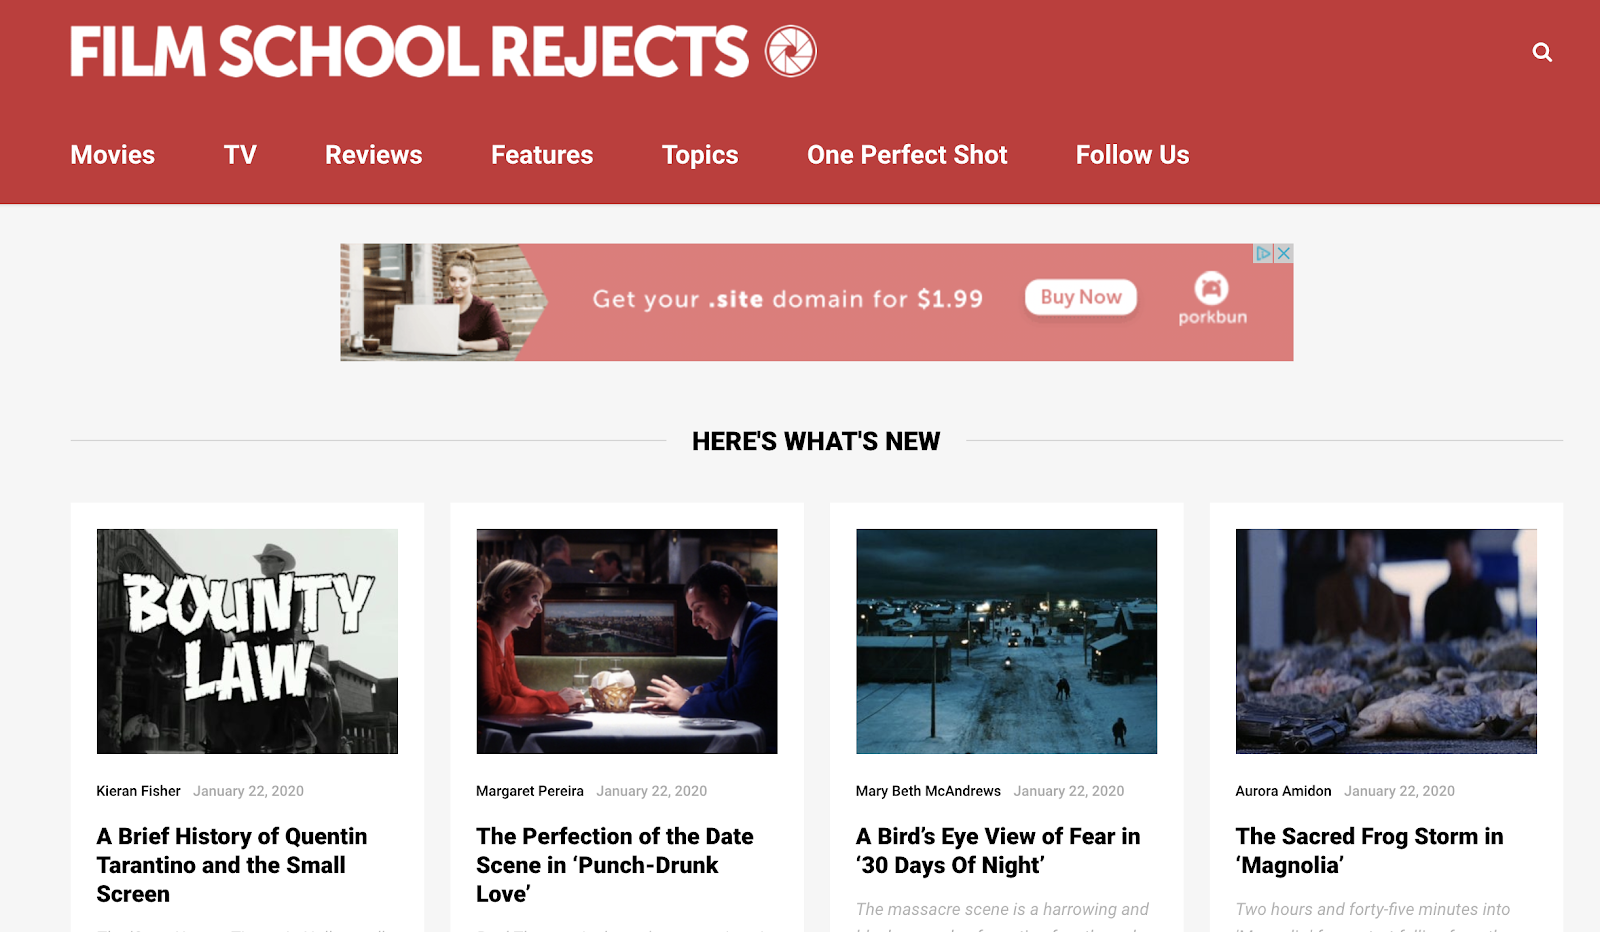 Film School Rejects (Screenshot) and Example of How to Name a Blog Creatively